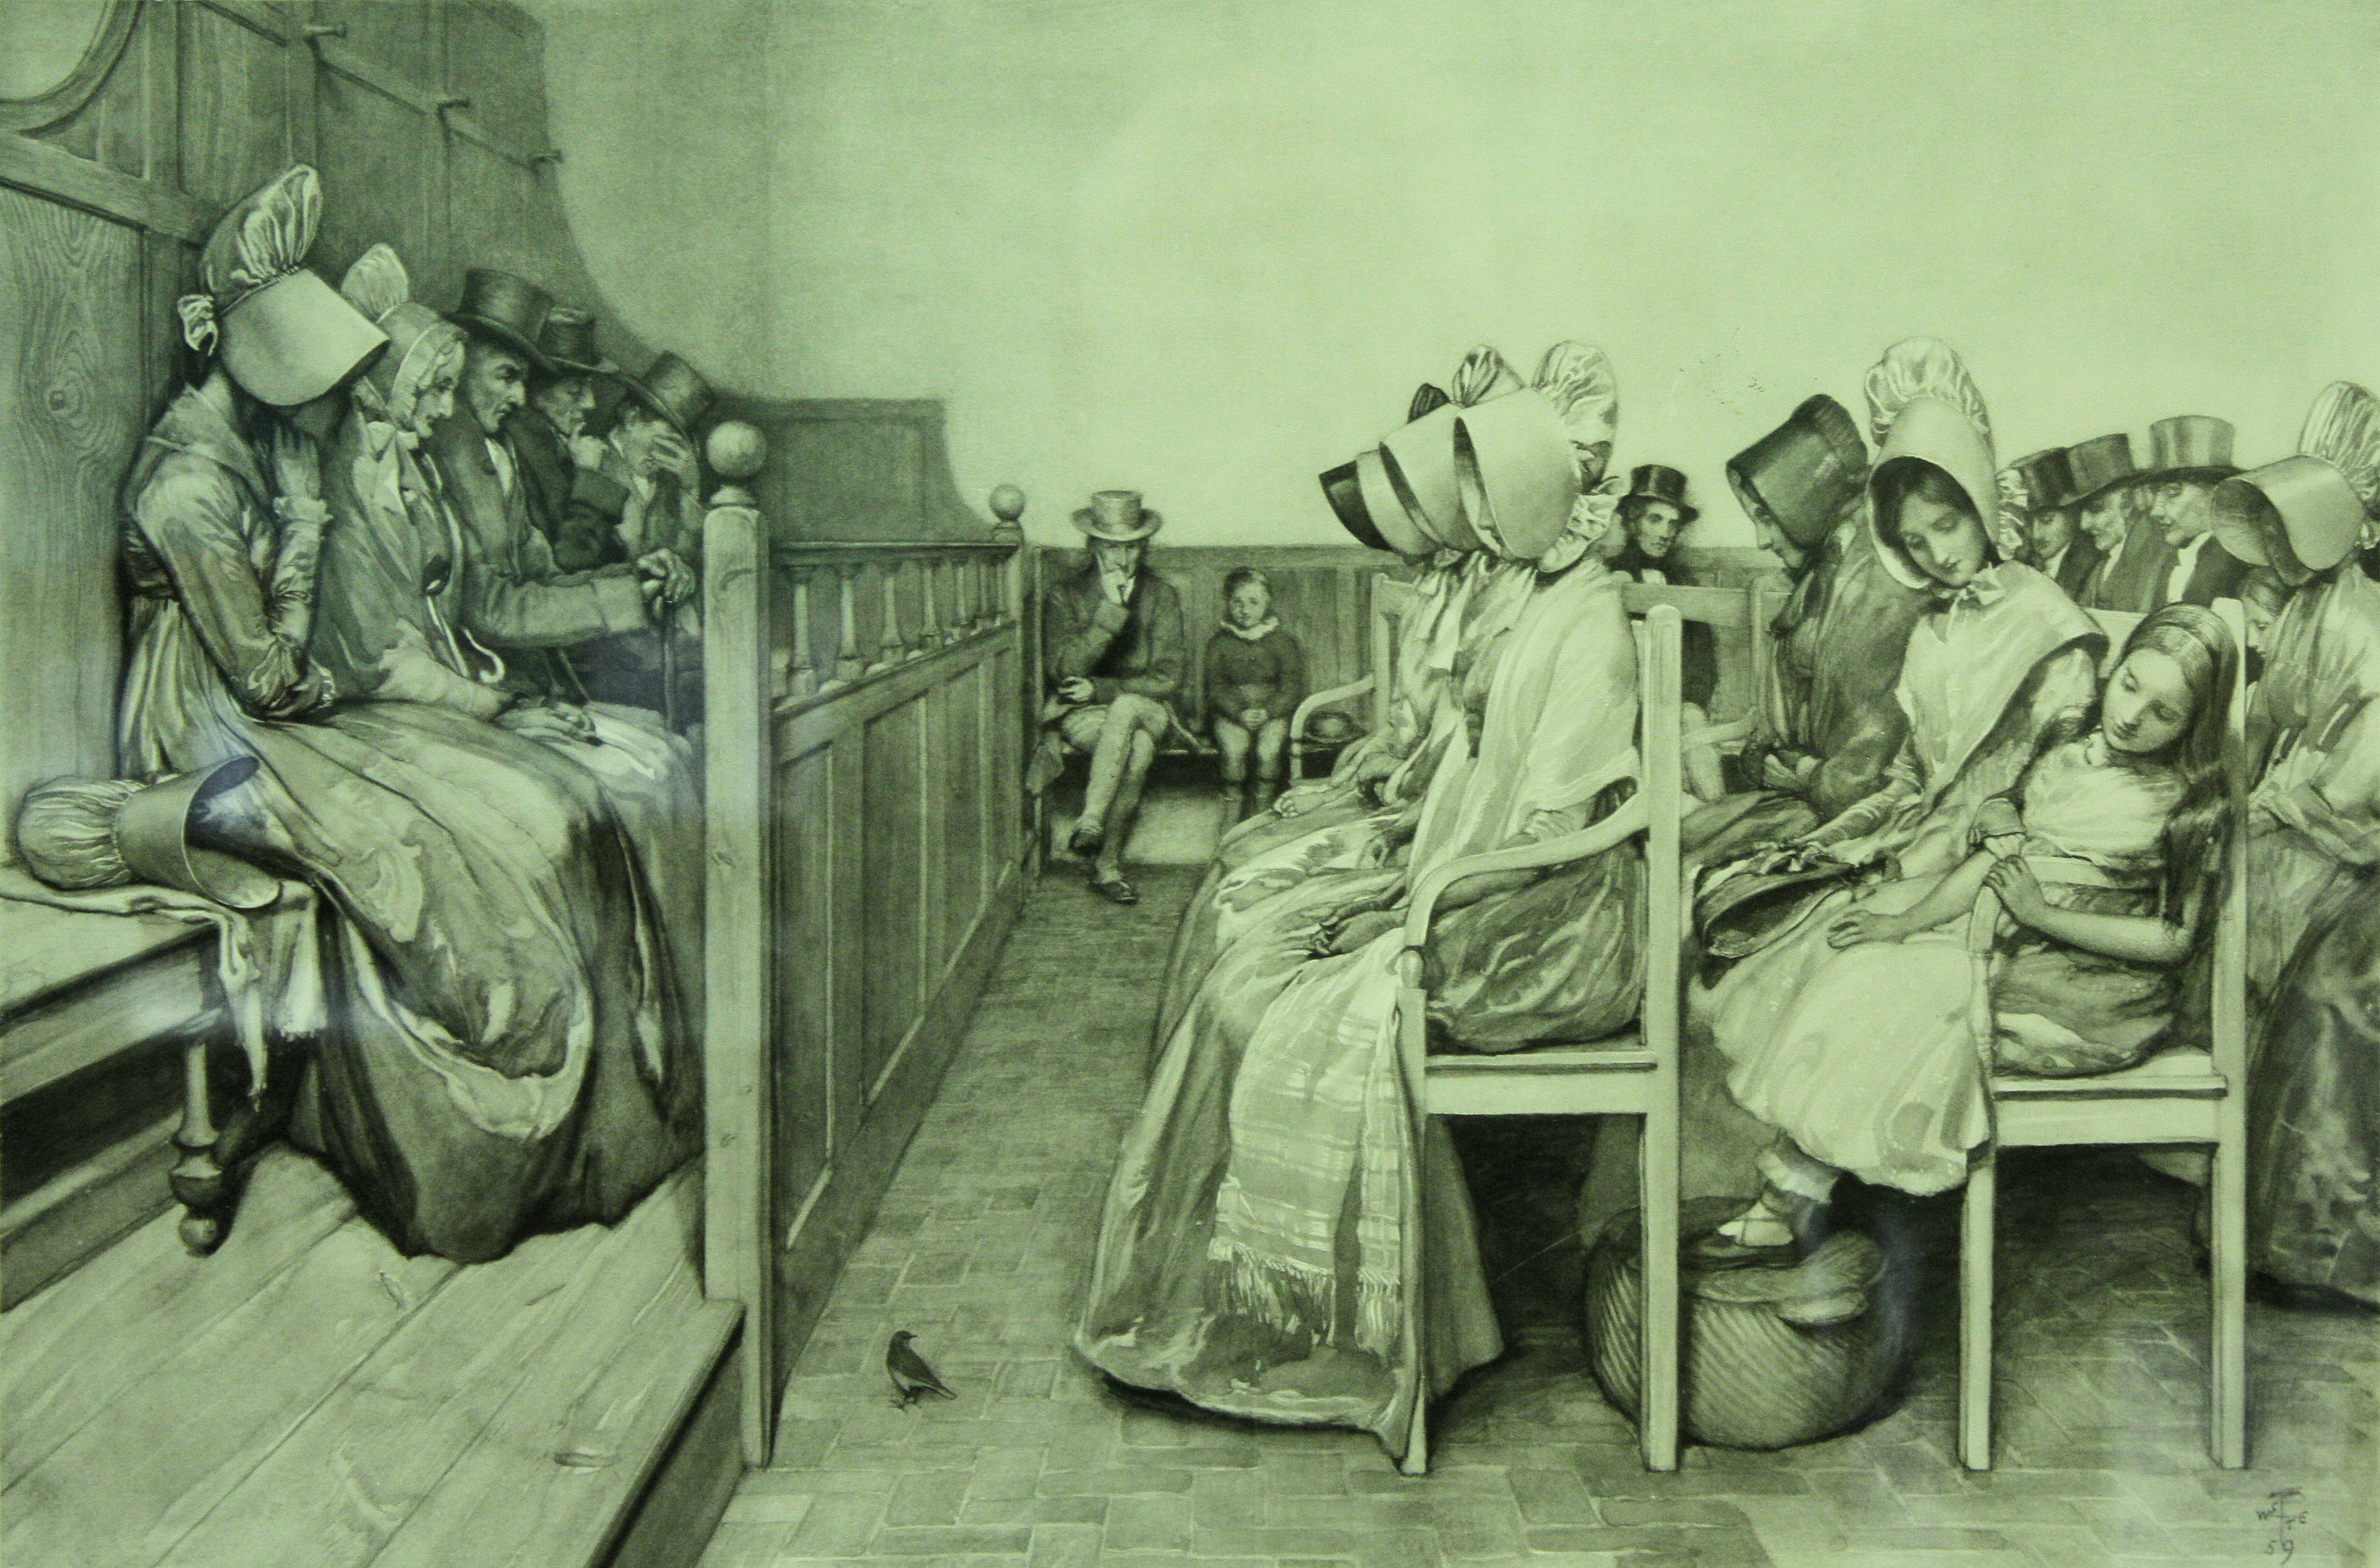 engraving of Quaker women in plain dress worshiping